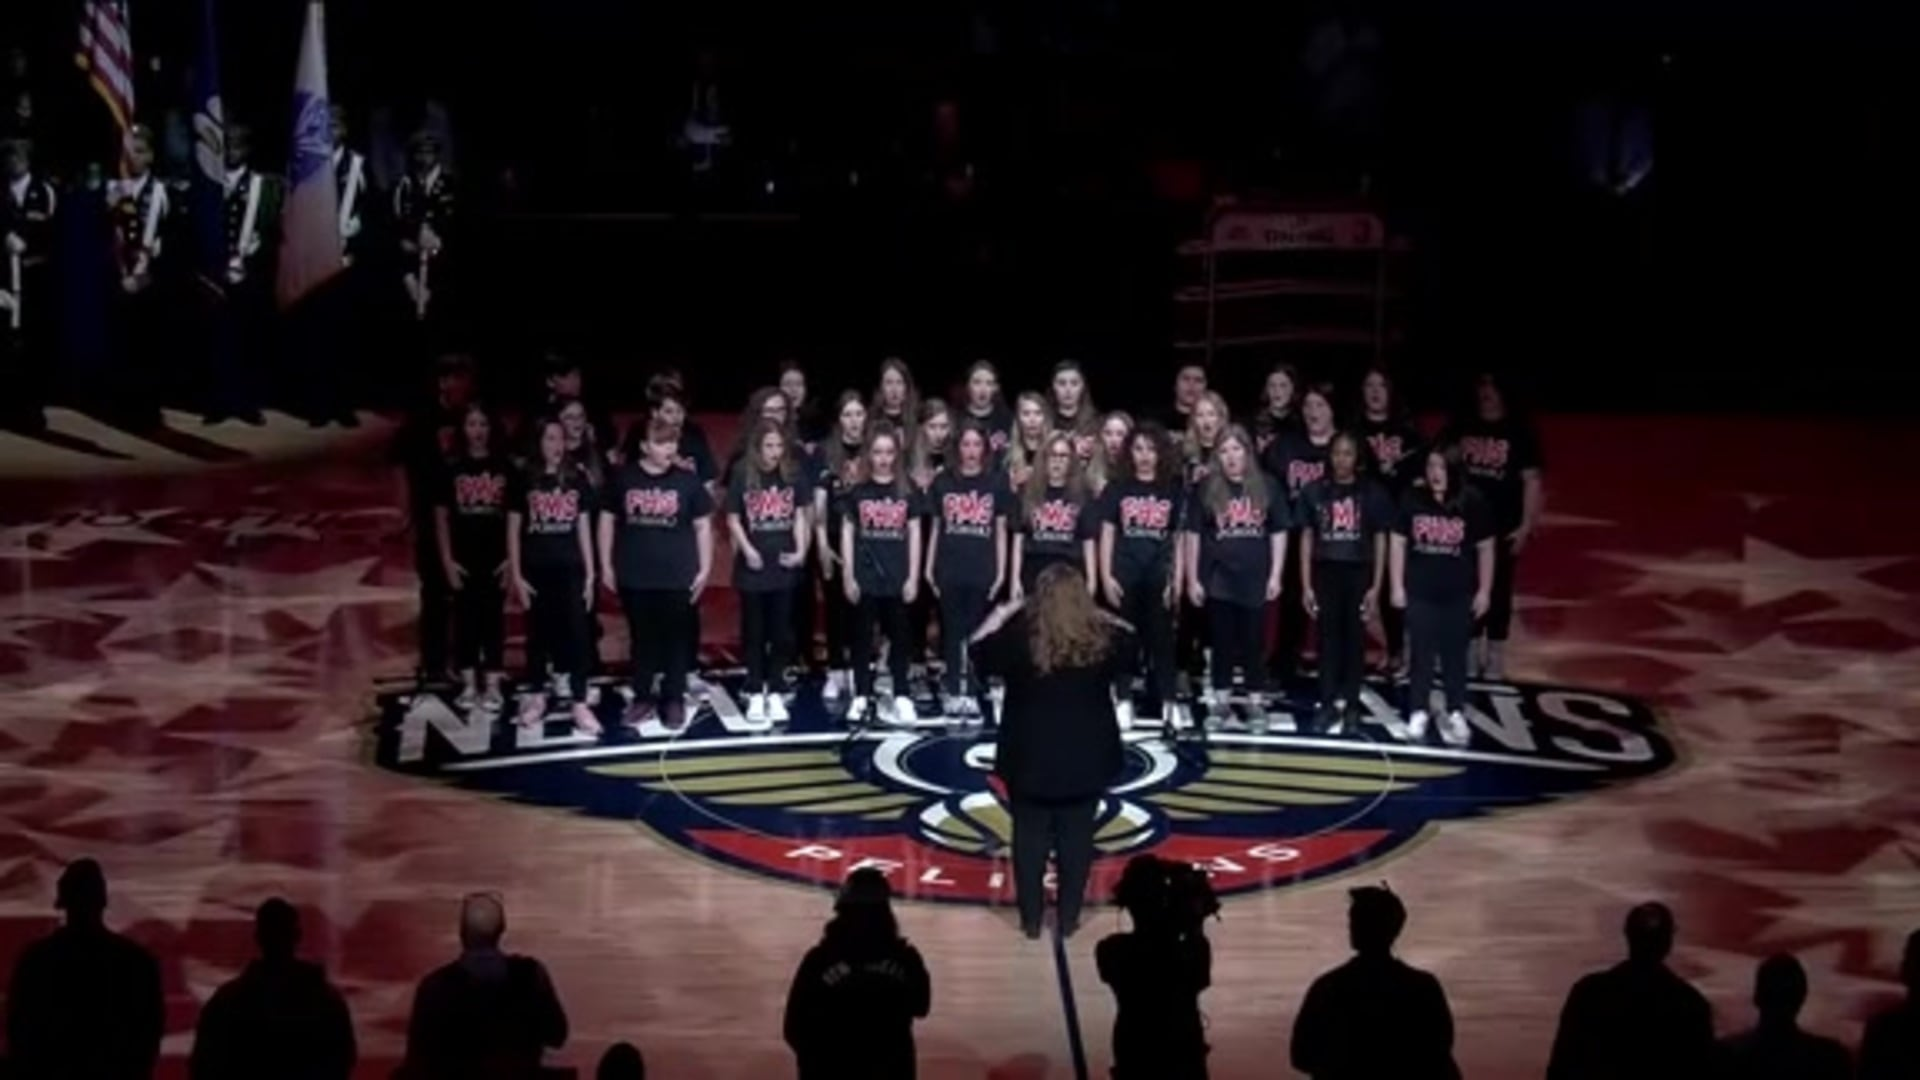 Entertainment: National Anthem performance by The Florence Choirs – March 6 vs. Miami Heat